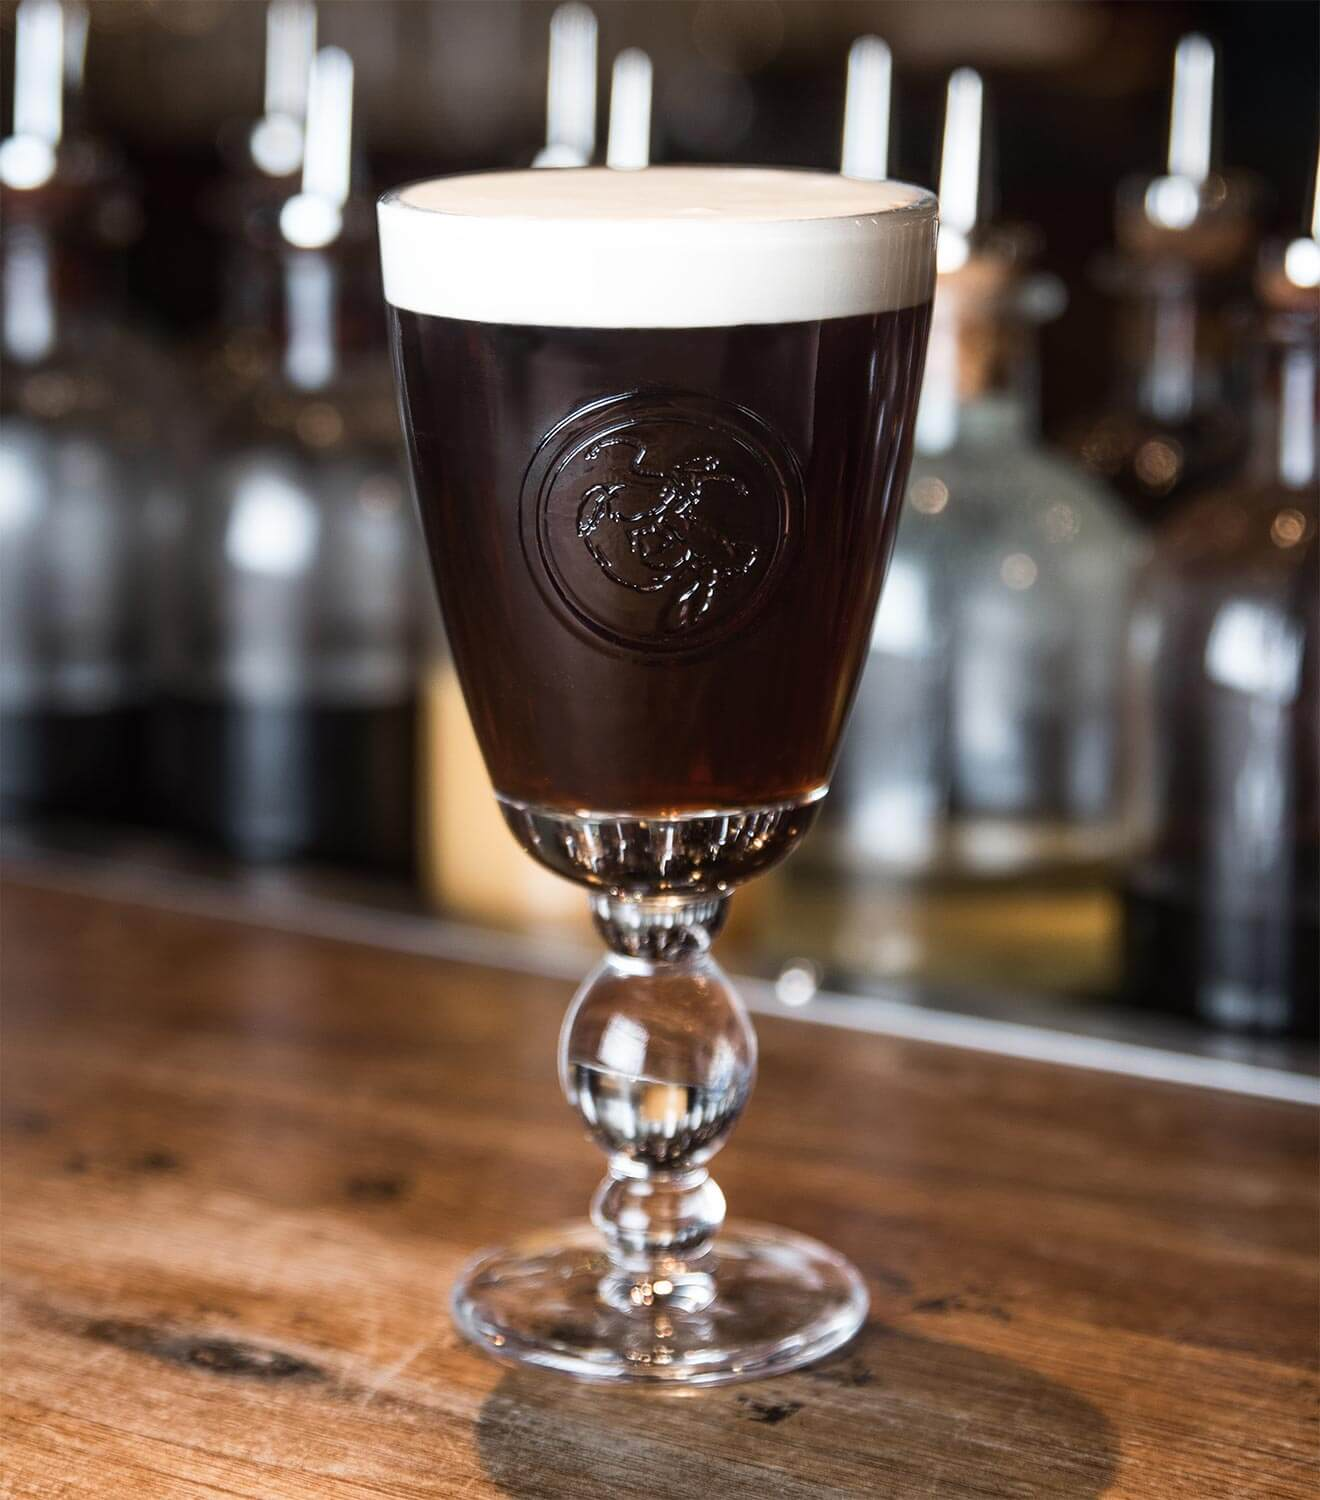 Dead Rabbit Irish Coffee, cocktail on wooden bartop